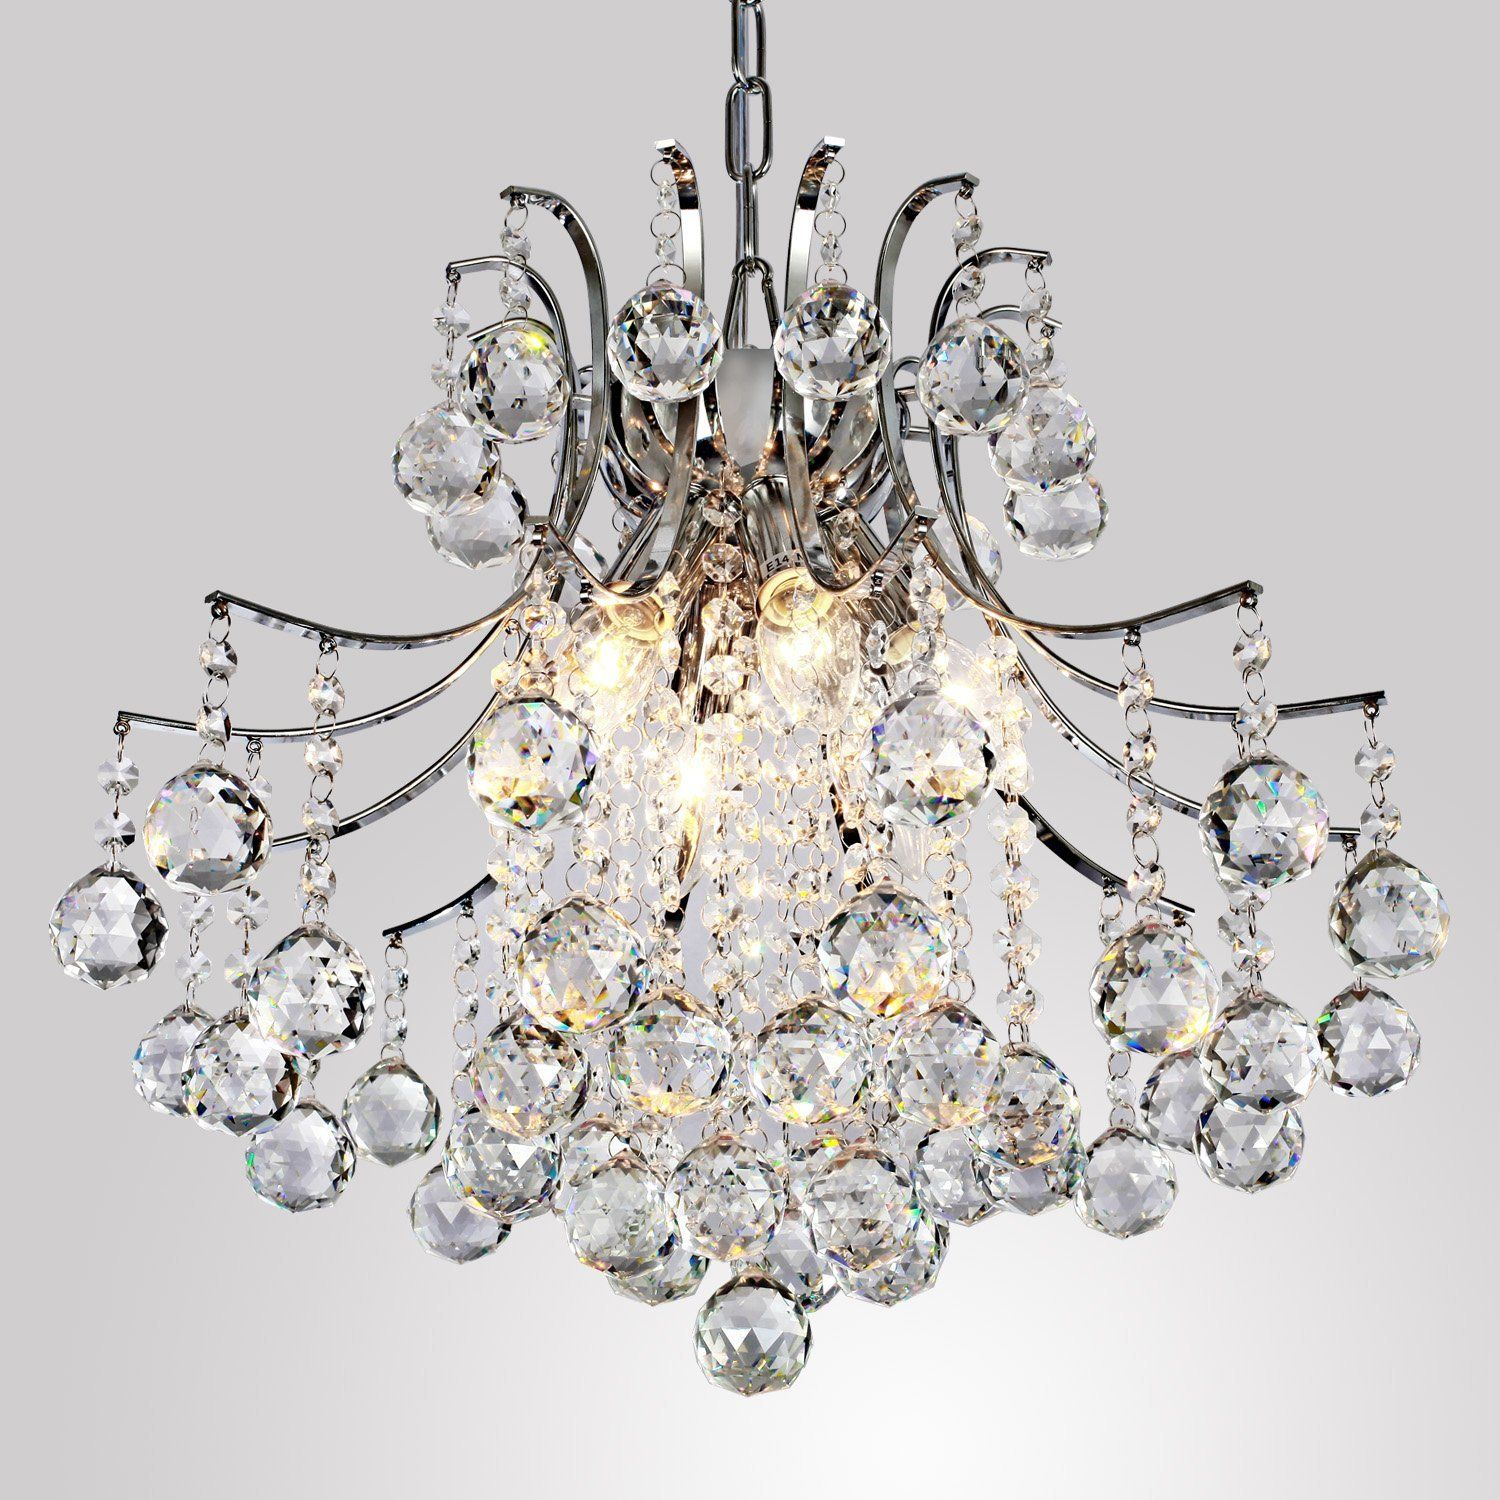 LightInTheBox Modern Contemporary Crystal Chandelier with 6 Lights, Pendant Modern  Ceiling Light Fixture for Bedroom